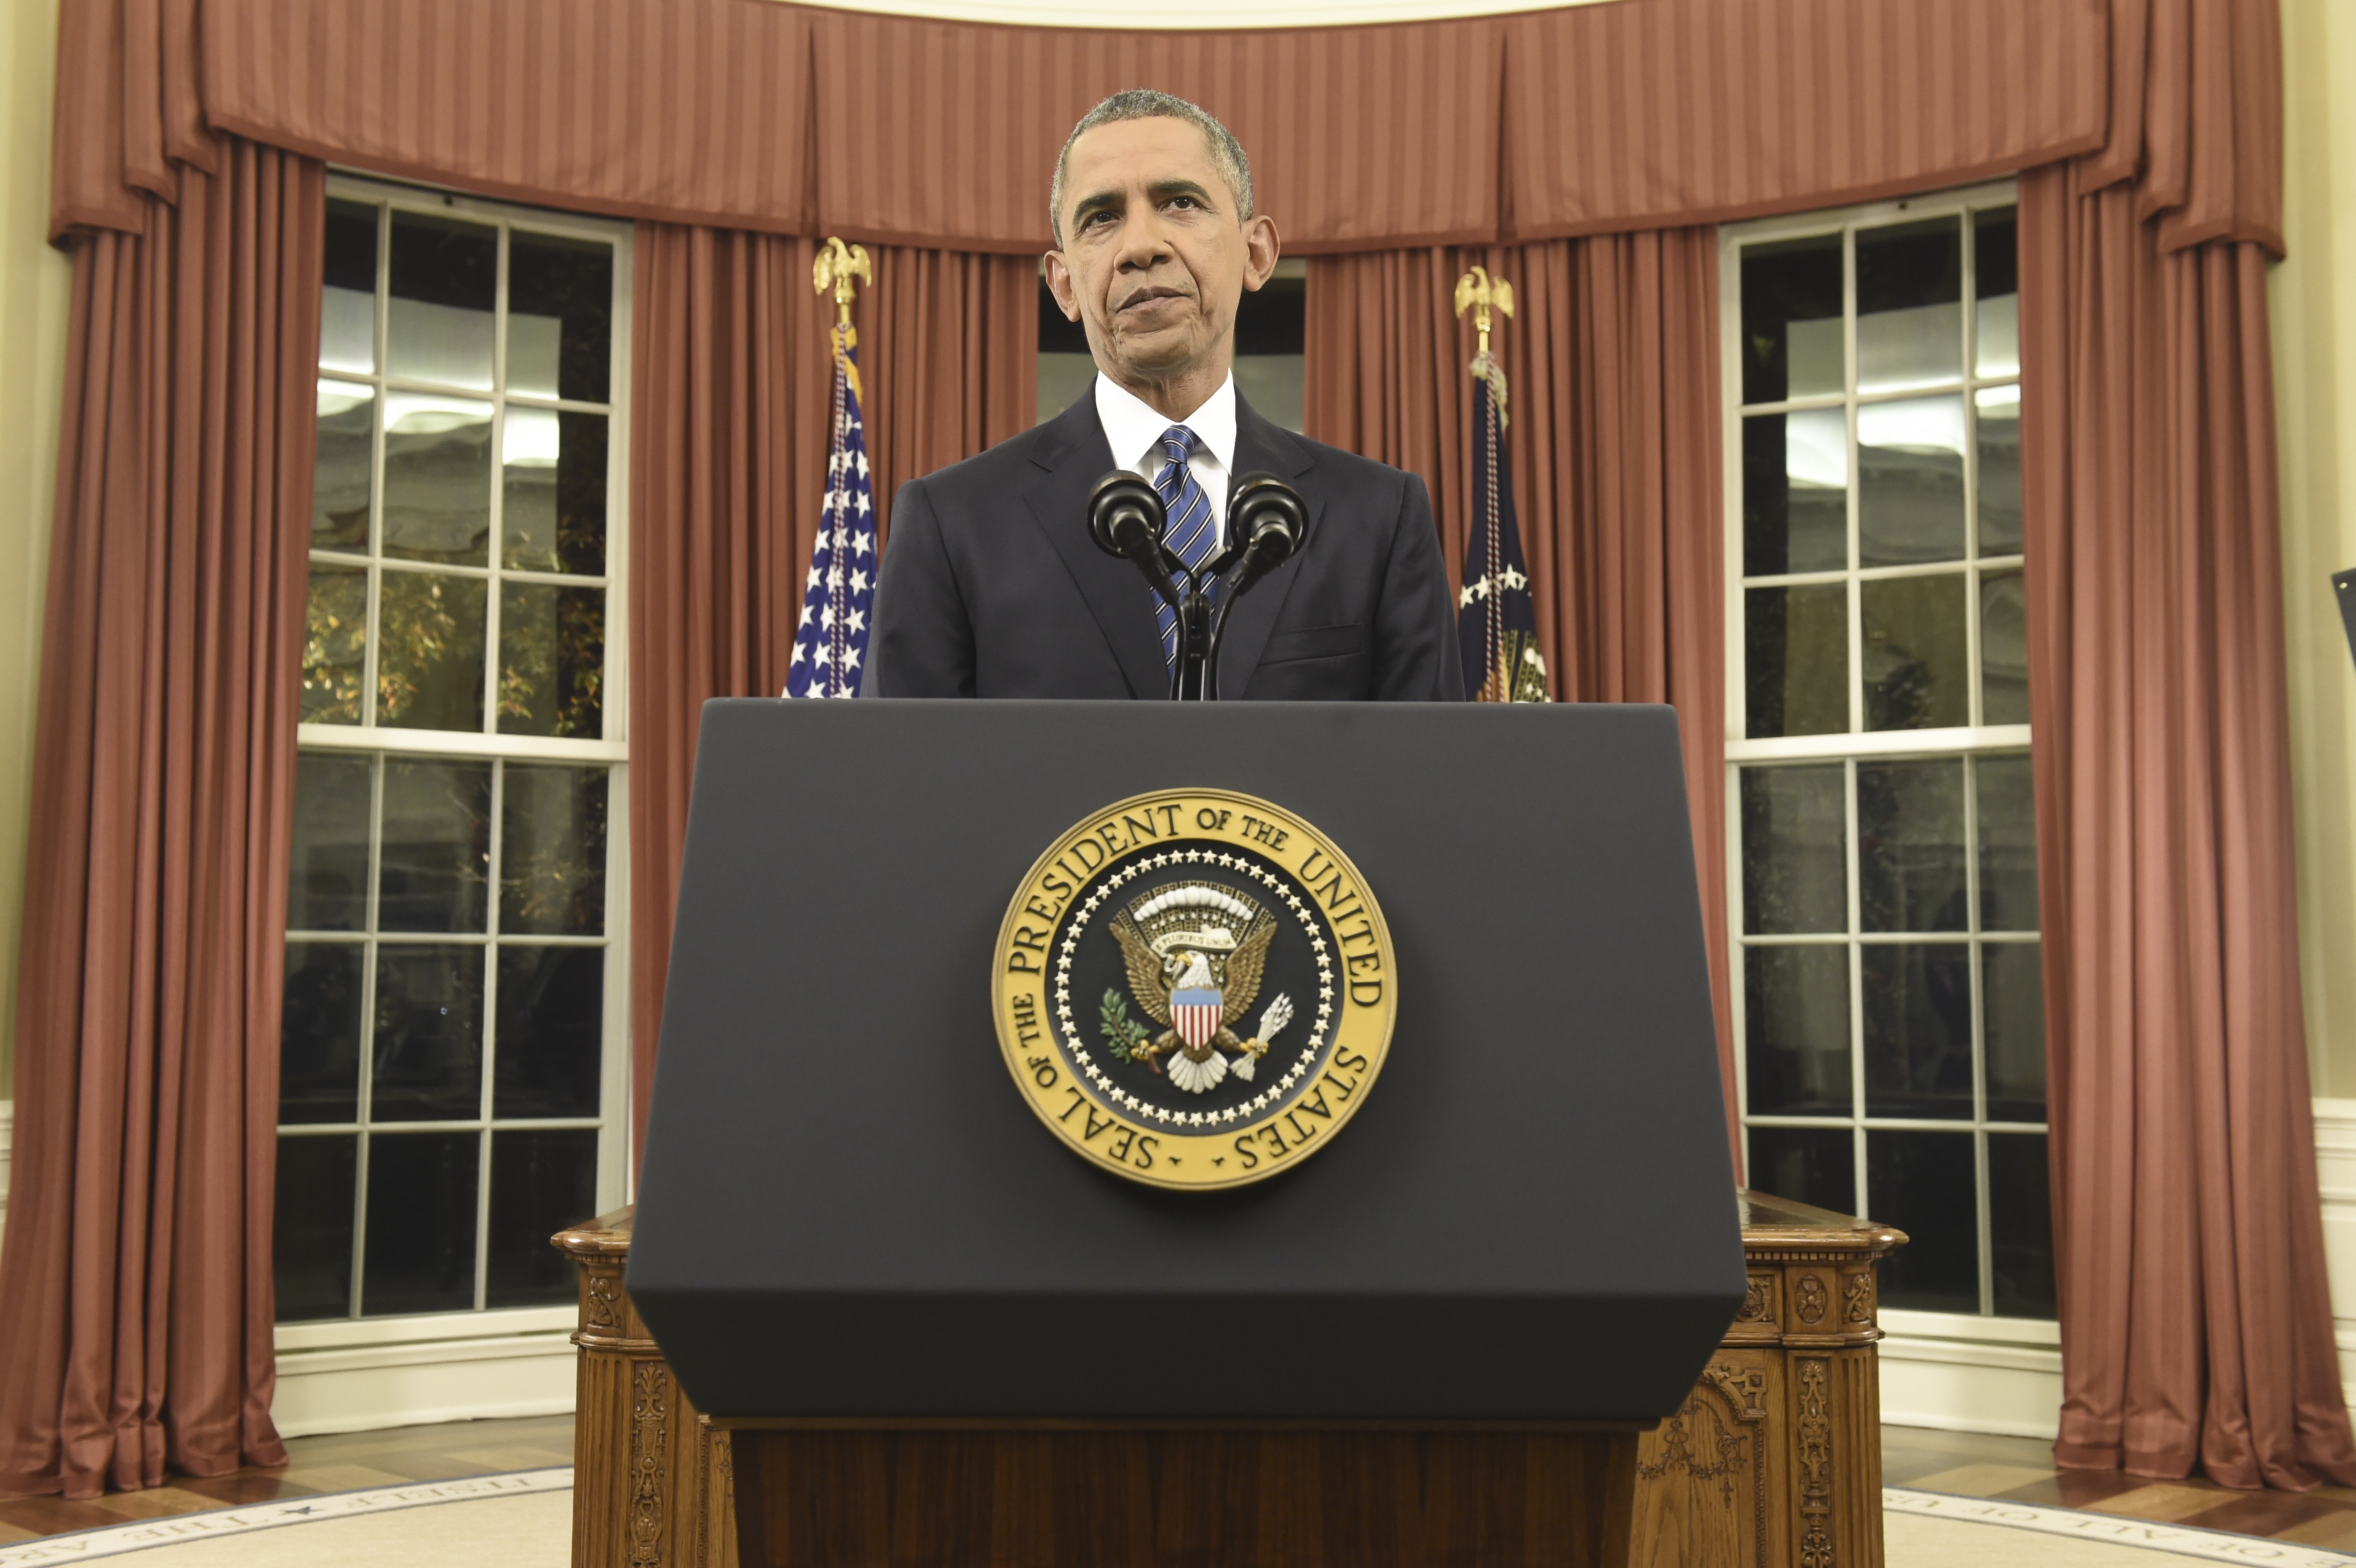 President Obama delivers an address on terrorism in the Oval Office of the White House in Washington, Sunday night.